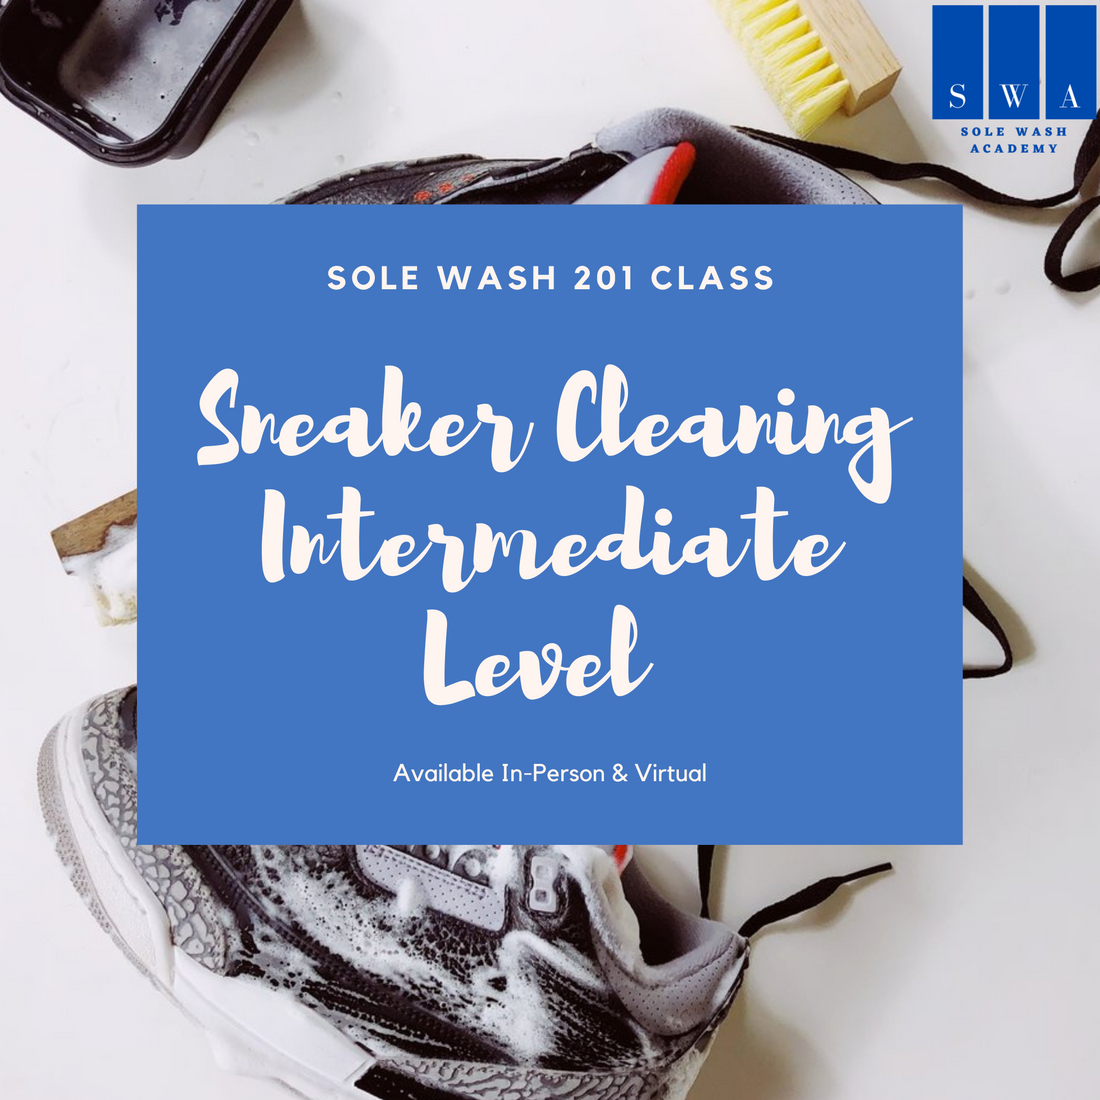 Sole Wash Cleaning Class 201 - Intermediate Level